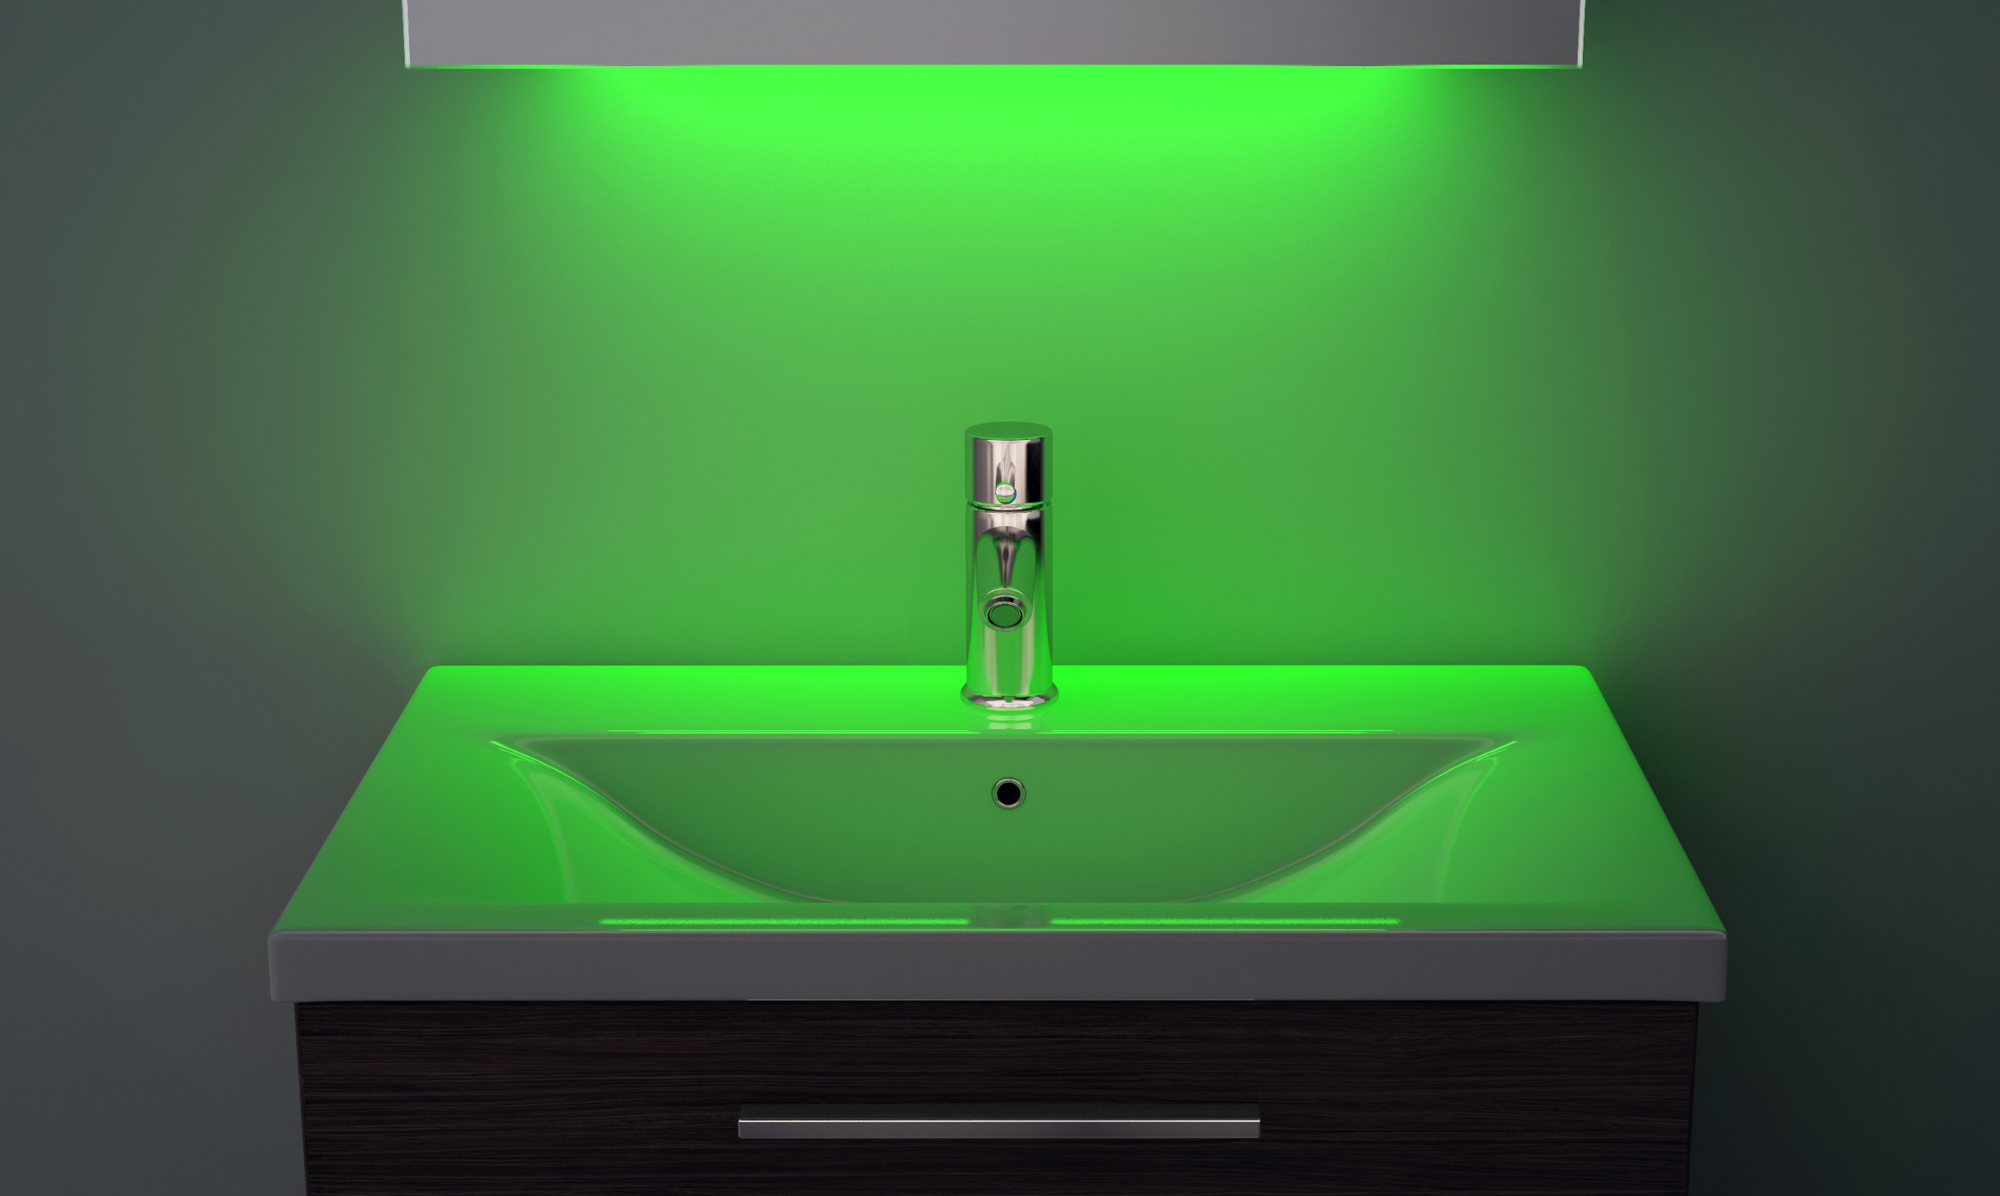 Miroir de toilette ultra mince lumi re d ambiance led for Lumiere led miroir